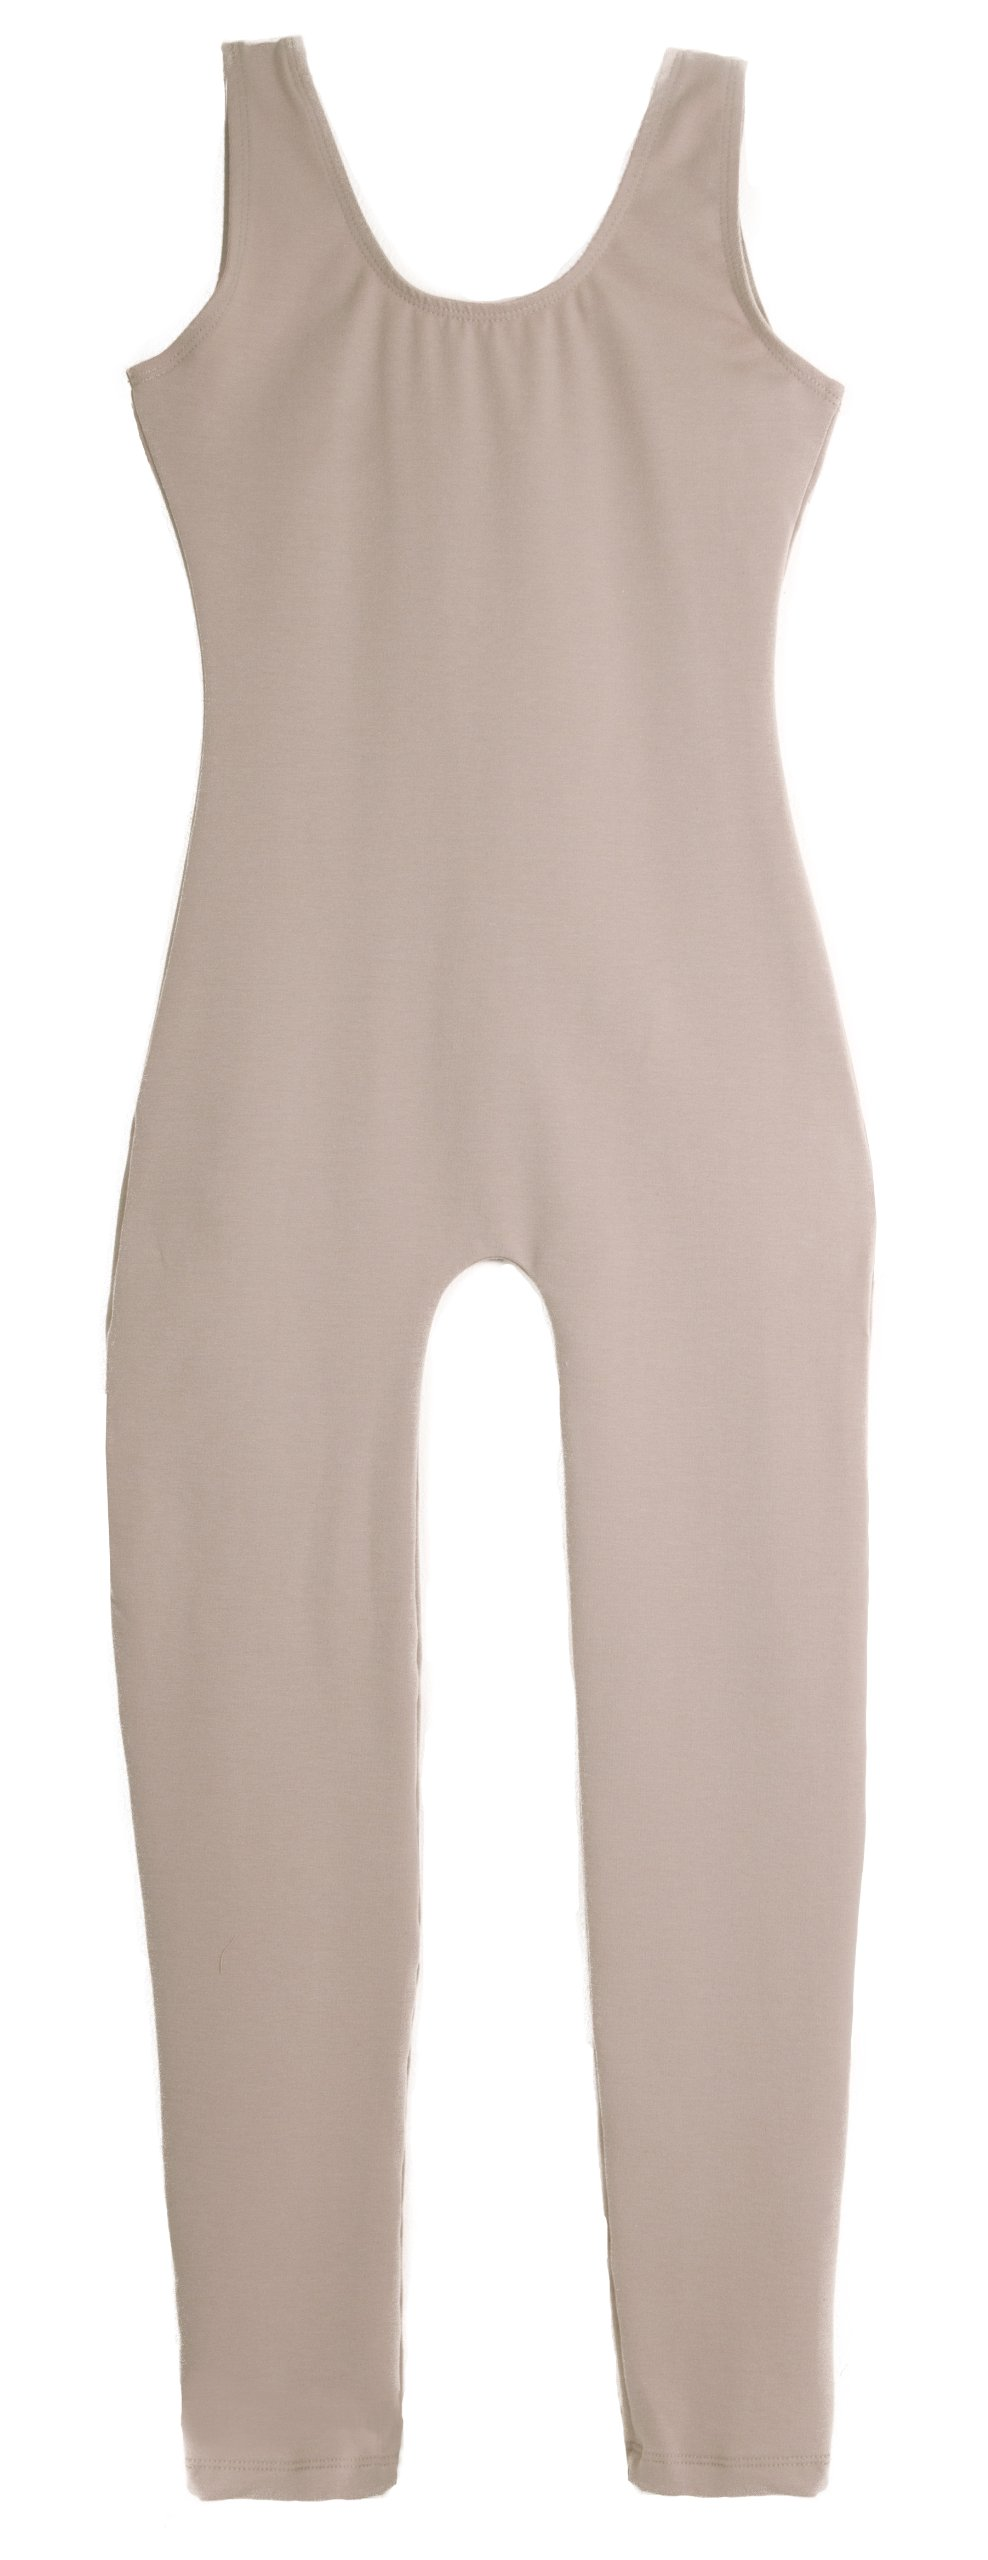 American Theater Dancewear Adult's Cotton/Lycra Tank Unitard (Nude M) by American Theater Dancewear